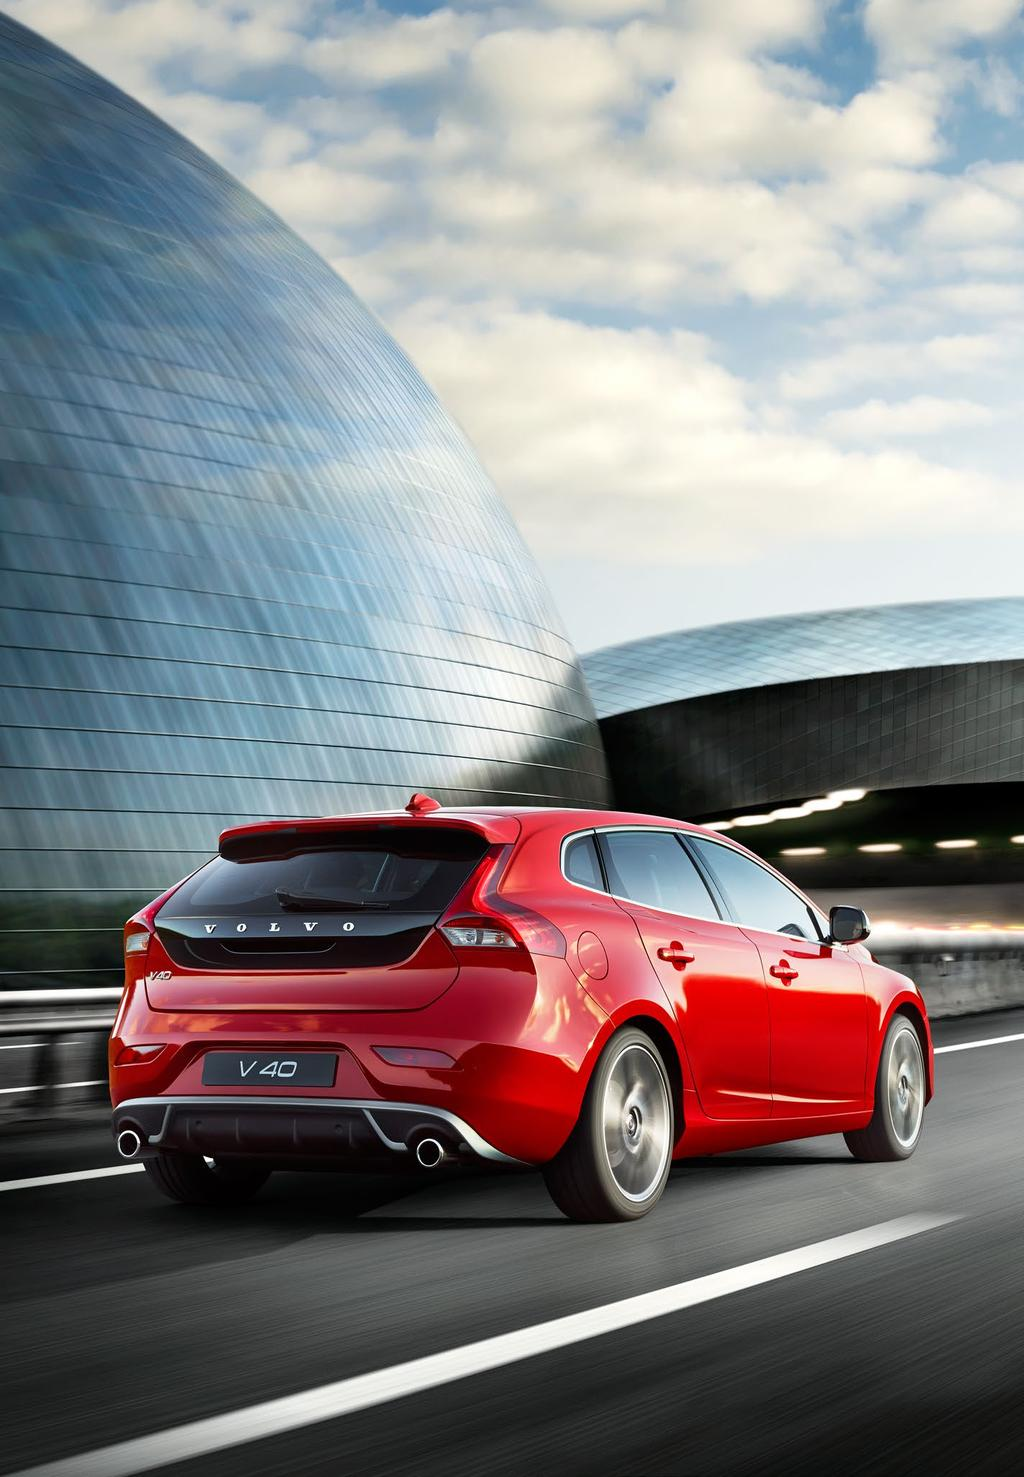 Are you looking at me? Good. Would you like to enhance the dynamic personality of your V40 even further?